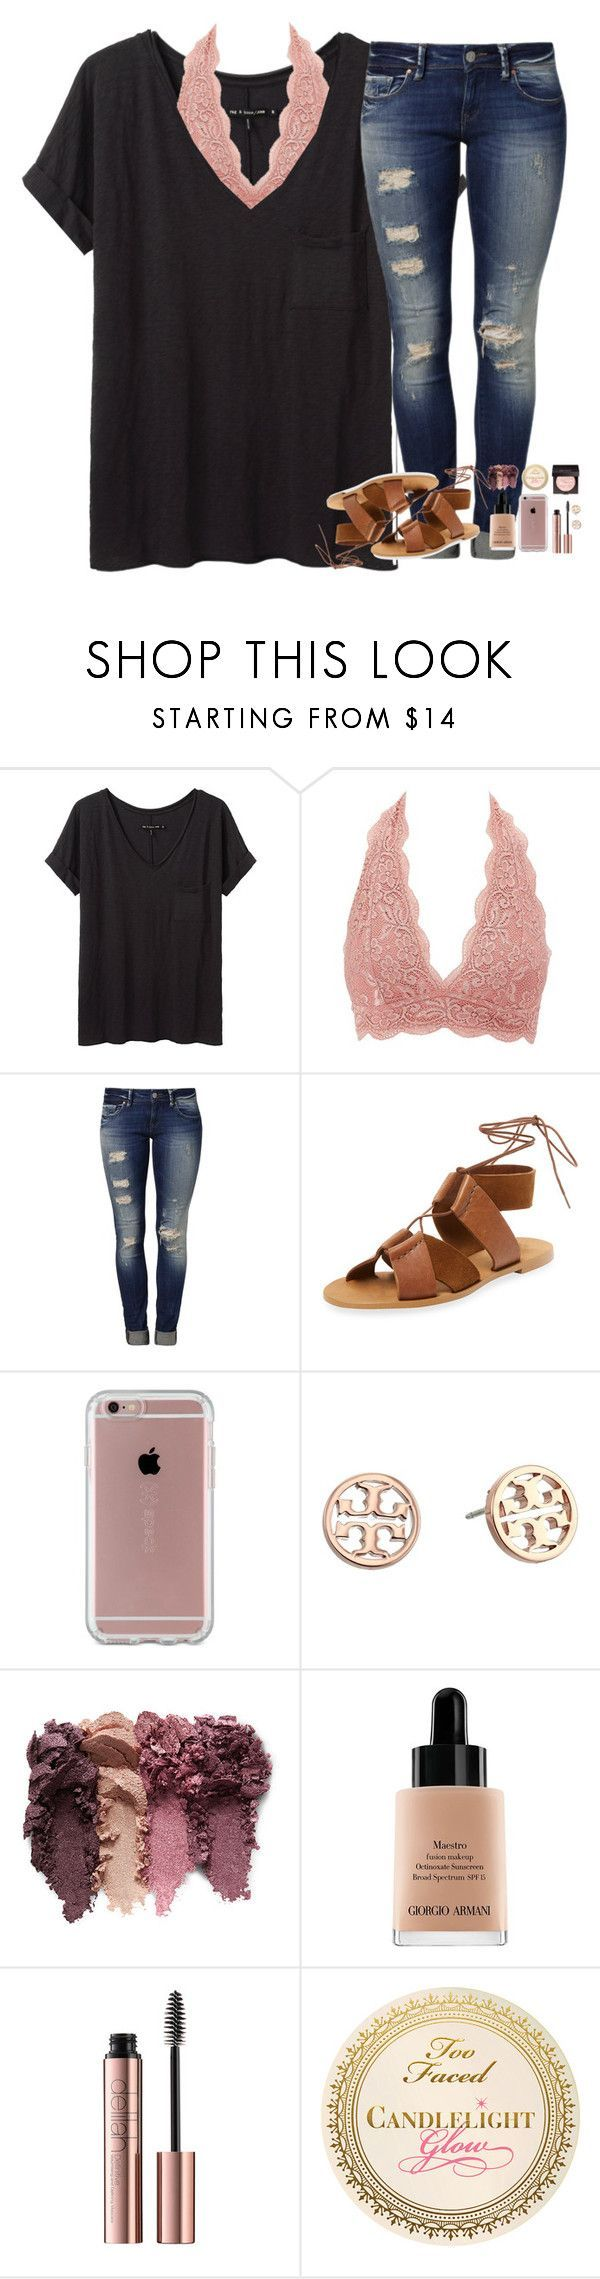 highlight be poppin ✨ by mehanahan ❤ liked on Polyvore featuring rag & bone/JEAN, Charlotte Russe, Mavi, Firth, Speck, Tory Burch, Giorgio Armani and Laura Mercier #schooloutfit